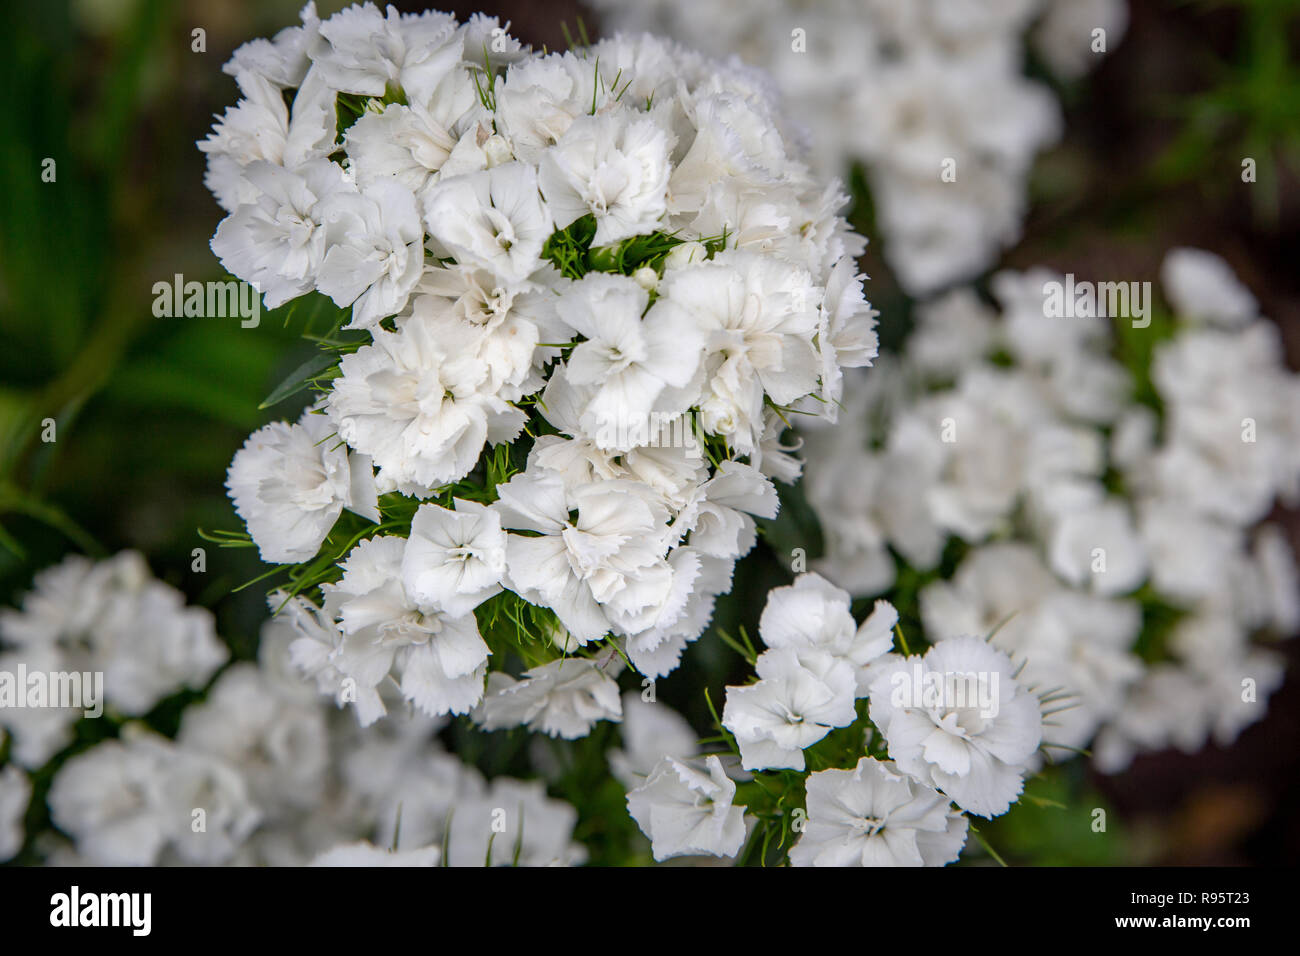 Title White sweet william growing in a garden bed, provides a wonderful fragrance - Stock Image